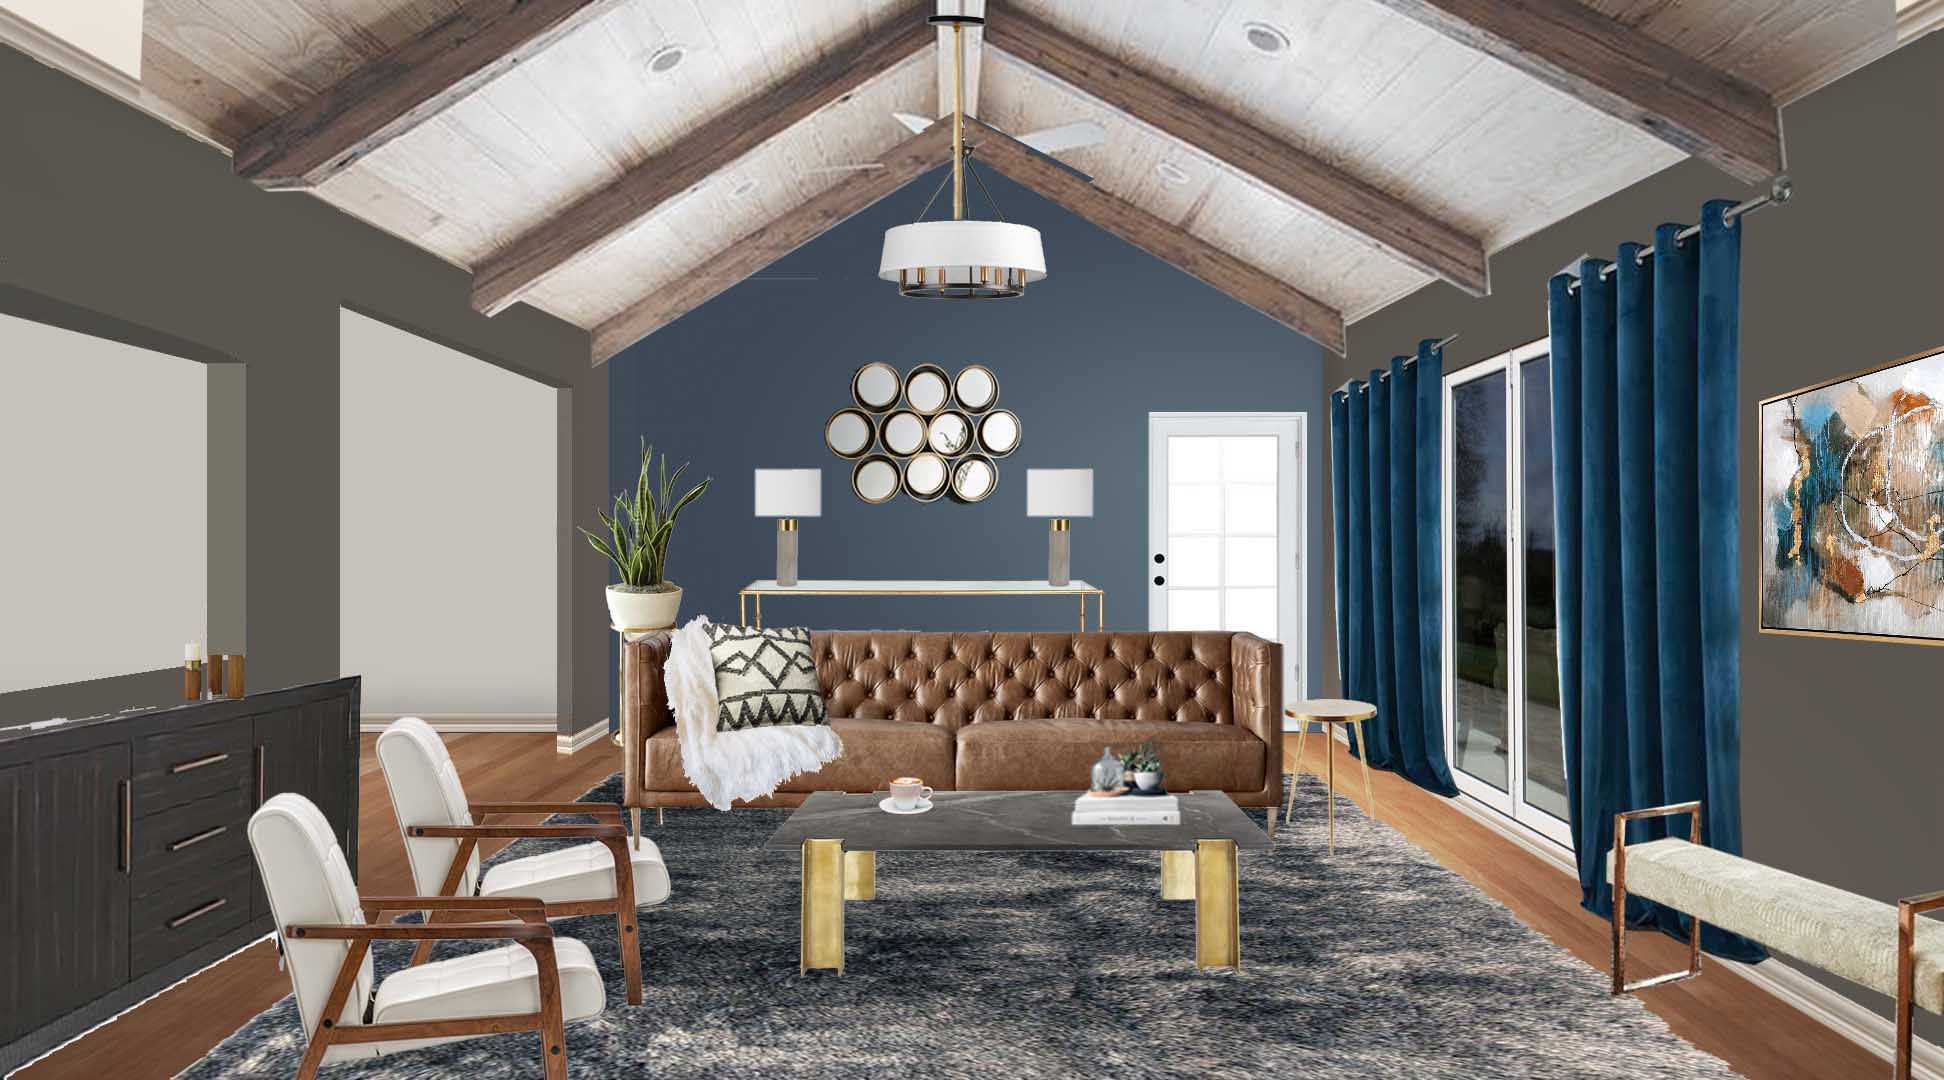 Learn Photoshop for Interior Design